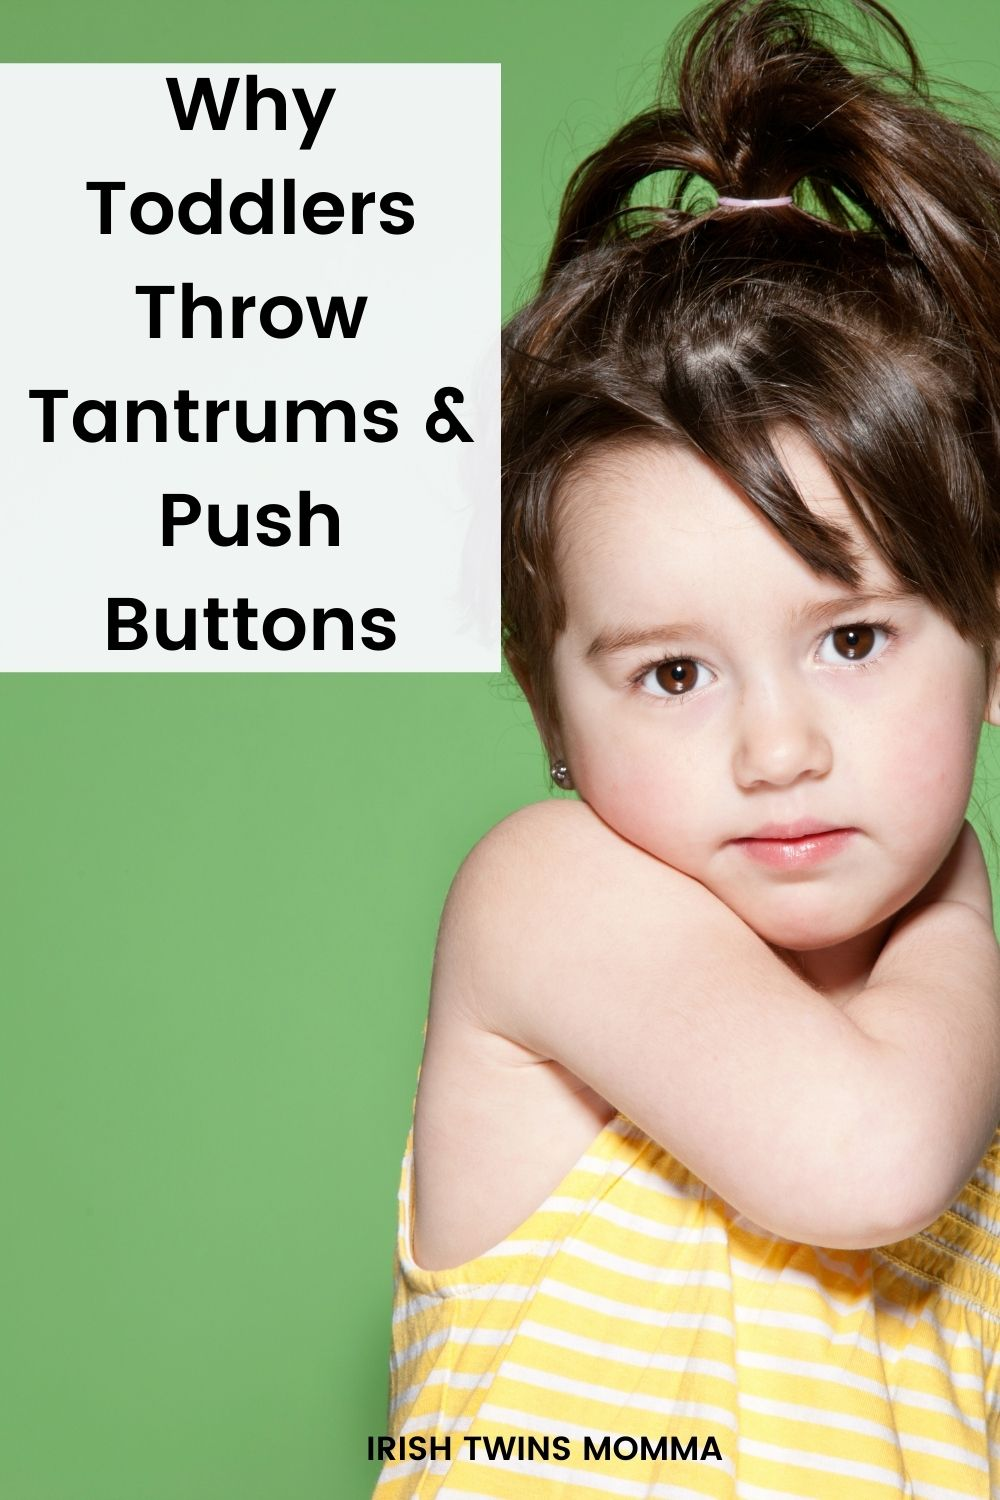 Why Toddlers Throw Tantrums and Push Buttons